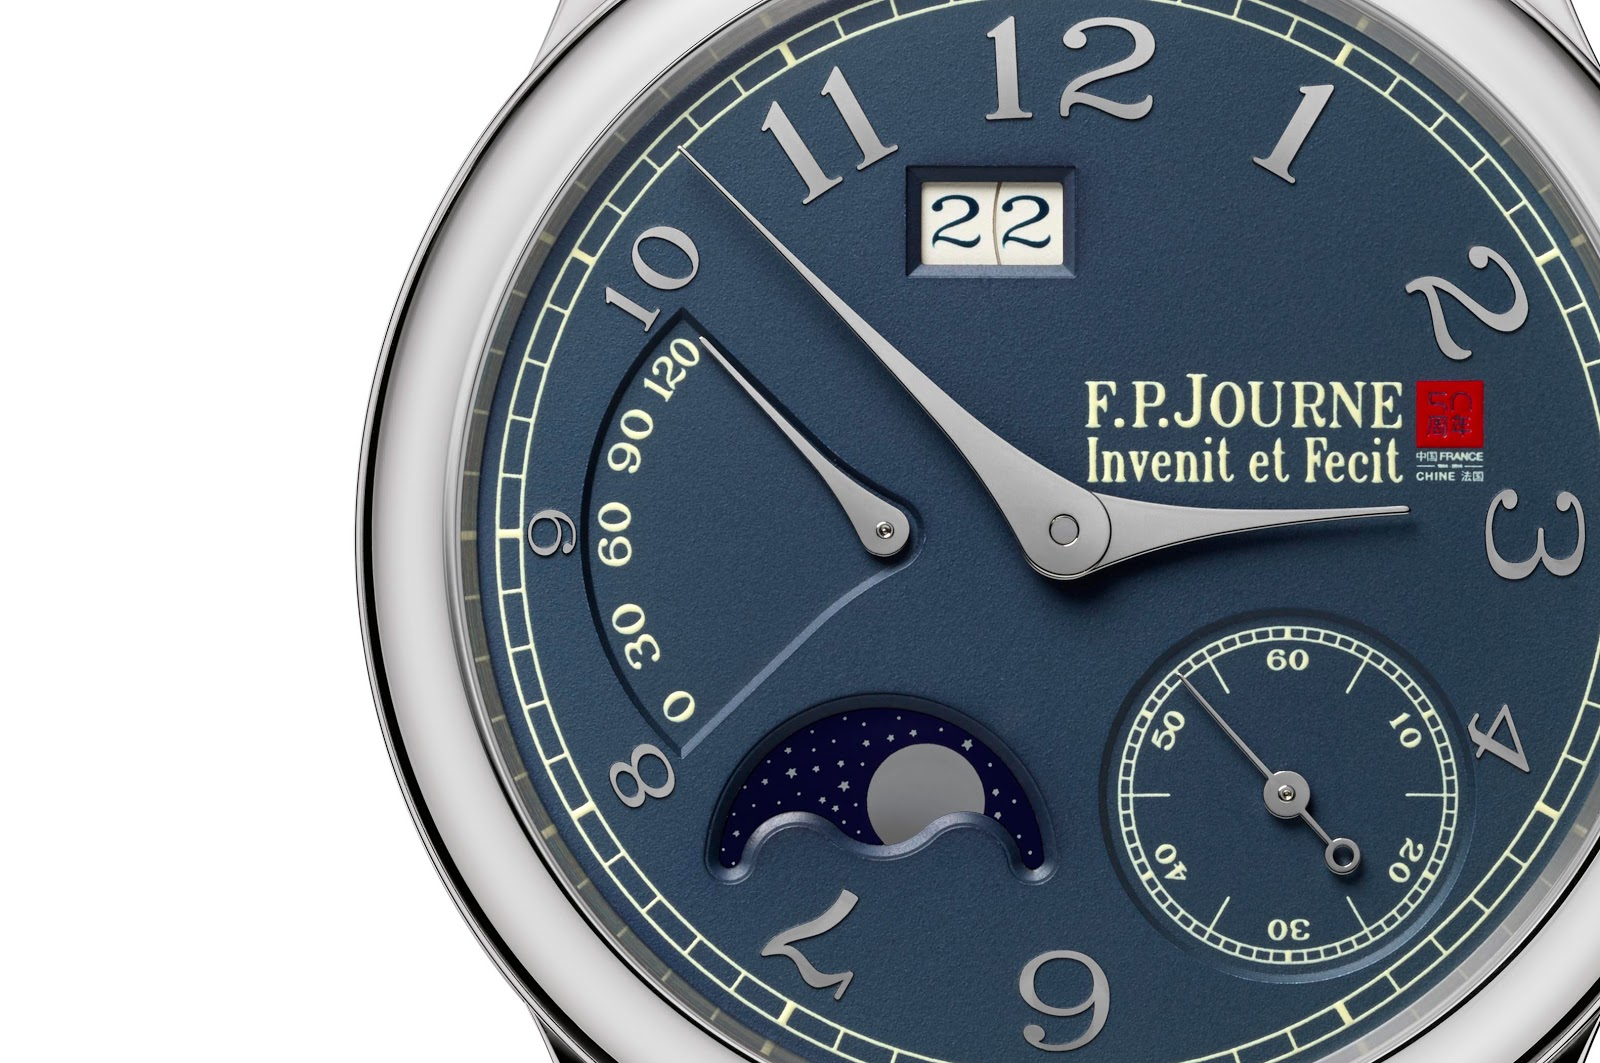 F.P-.Journe-FranceE28093China-50-Octa-Automatique-Lune-282291